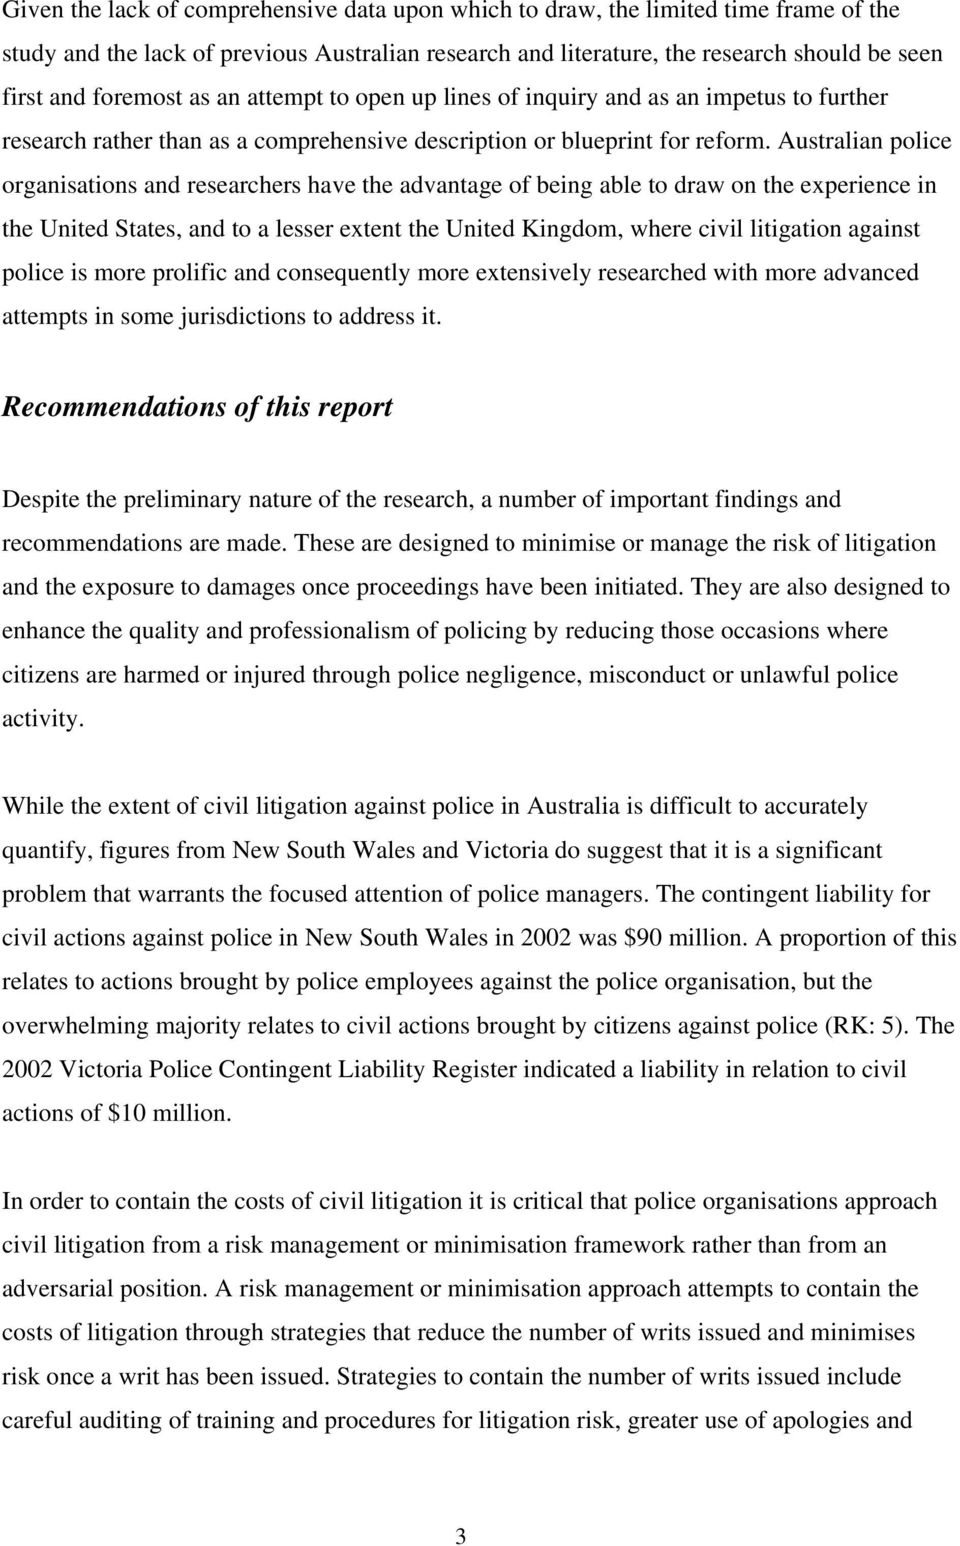 Australian police organisations and researchers have the advantage of being able to draw on the experience in the United States, and to a lesser extent the United Kingdom, where civil litigation